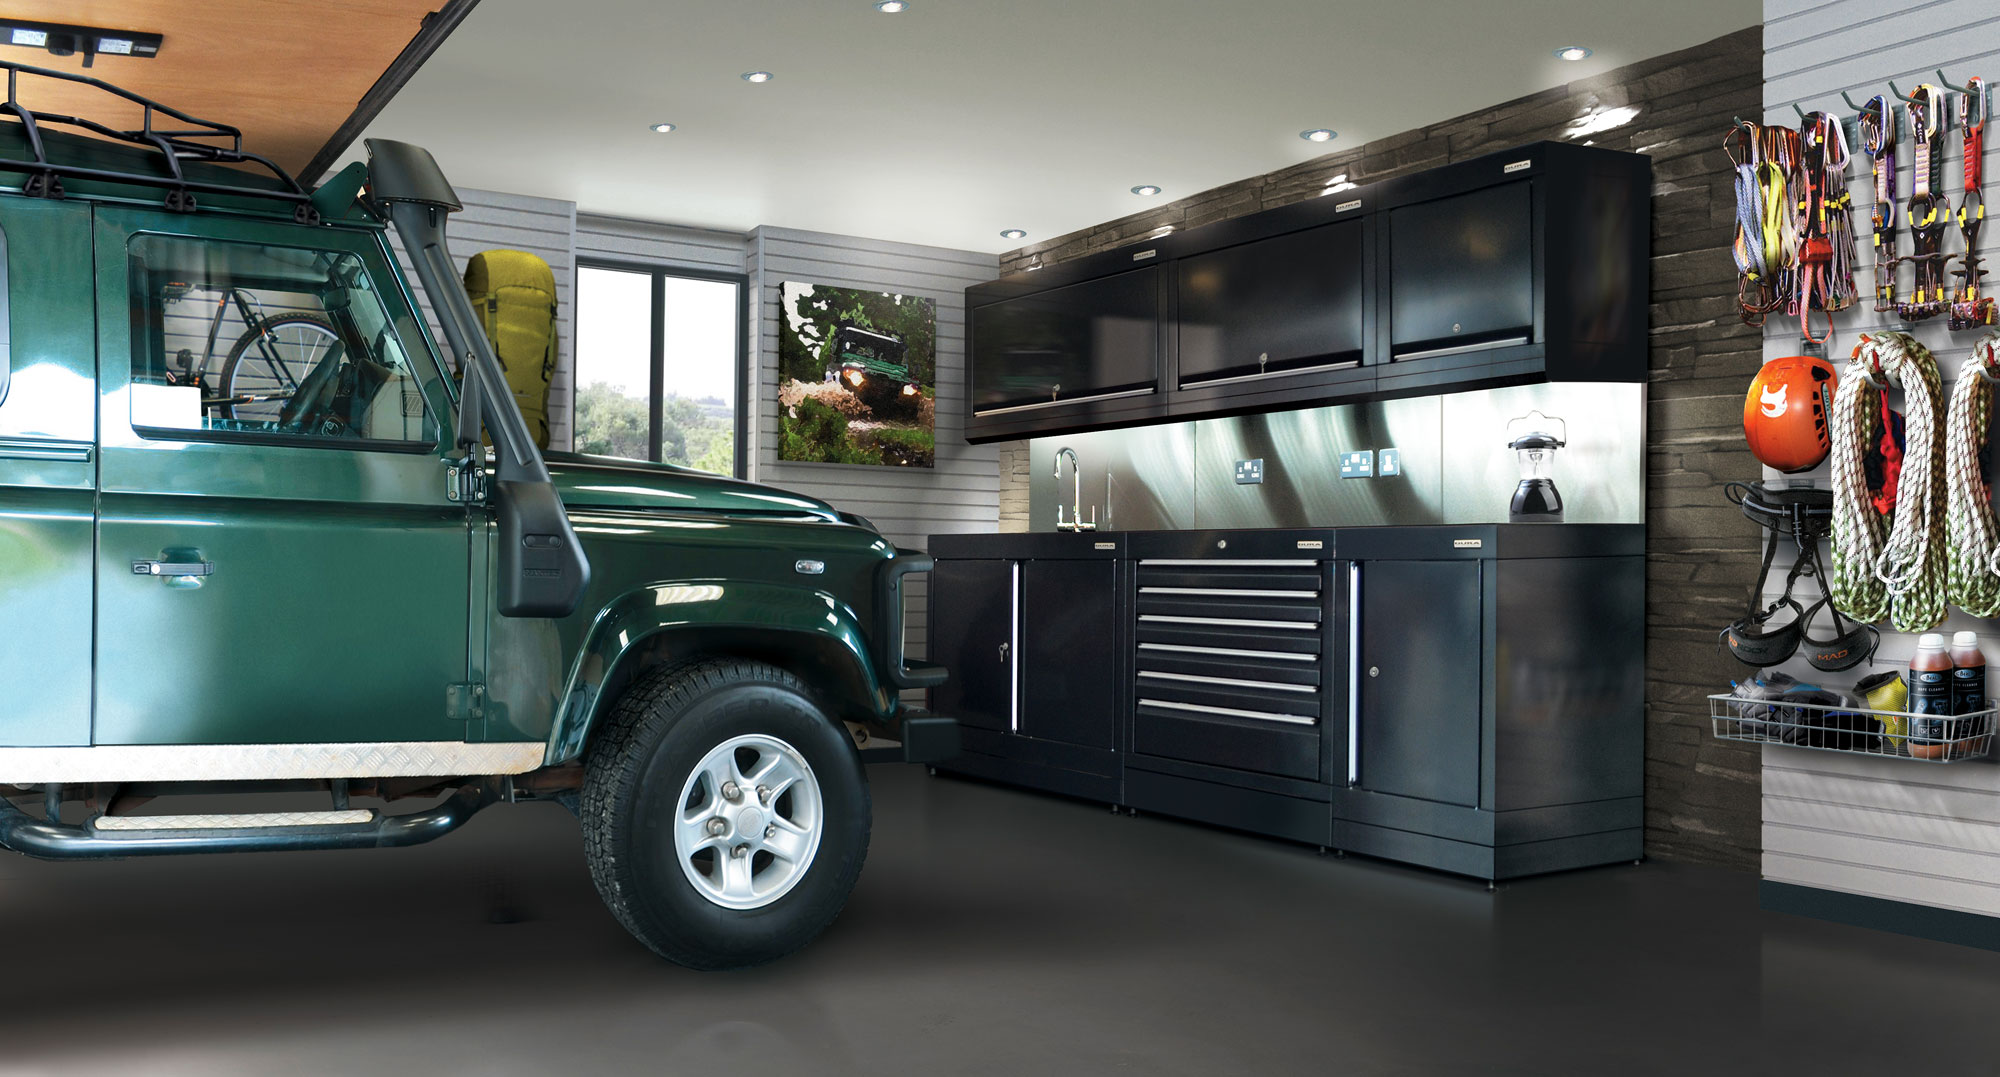 Designer garage interiors   the new must have. Designer garage interiors   the new must have